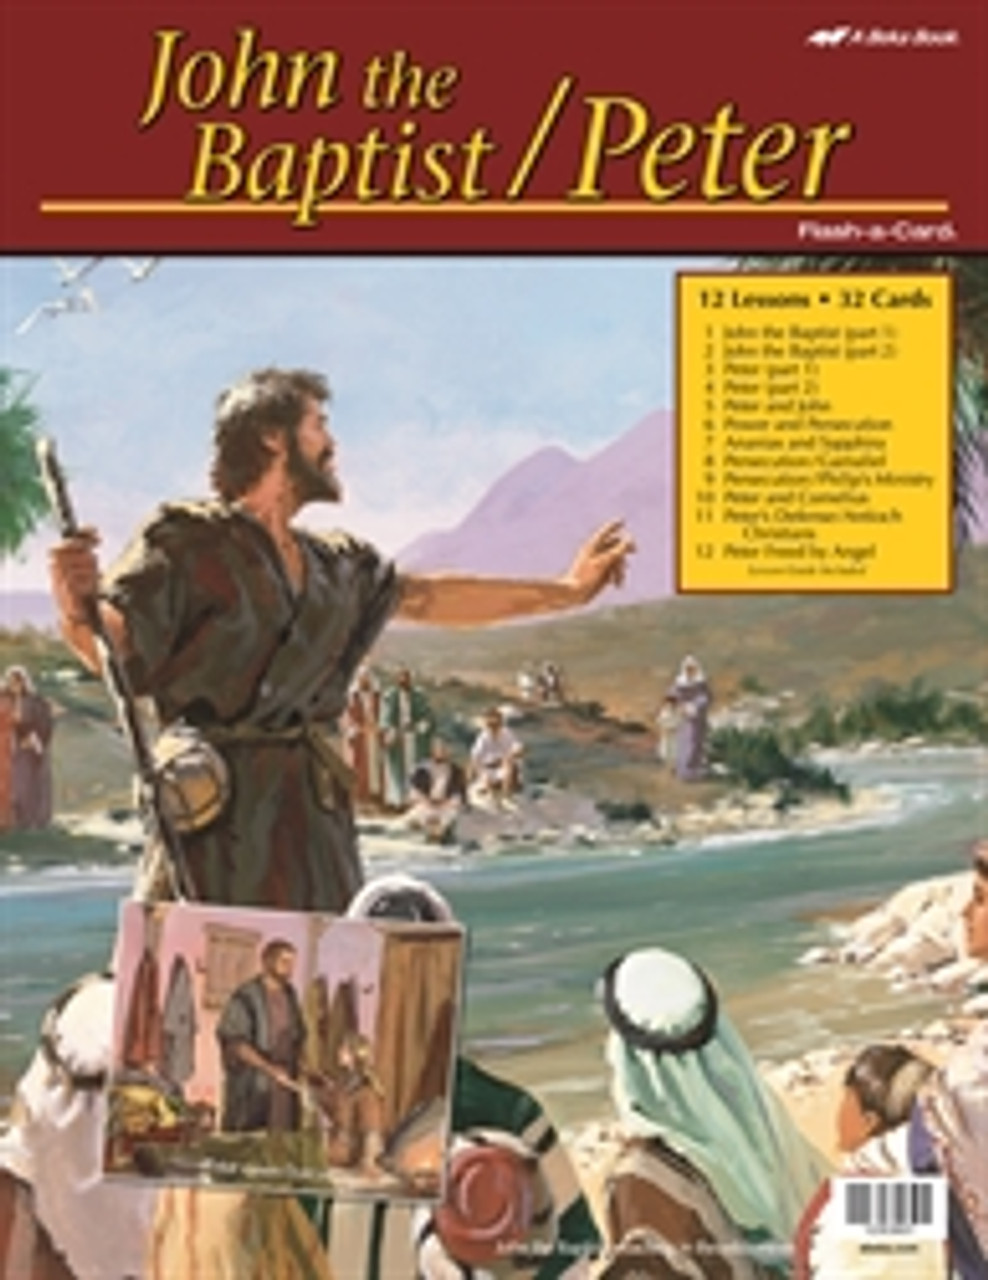 John the Baptist / Peter